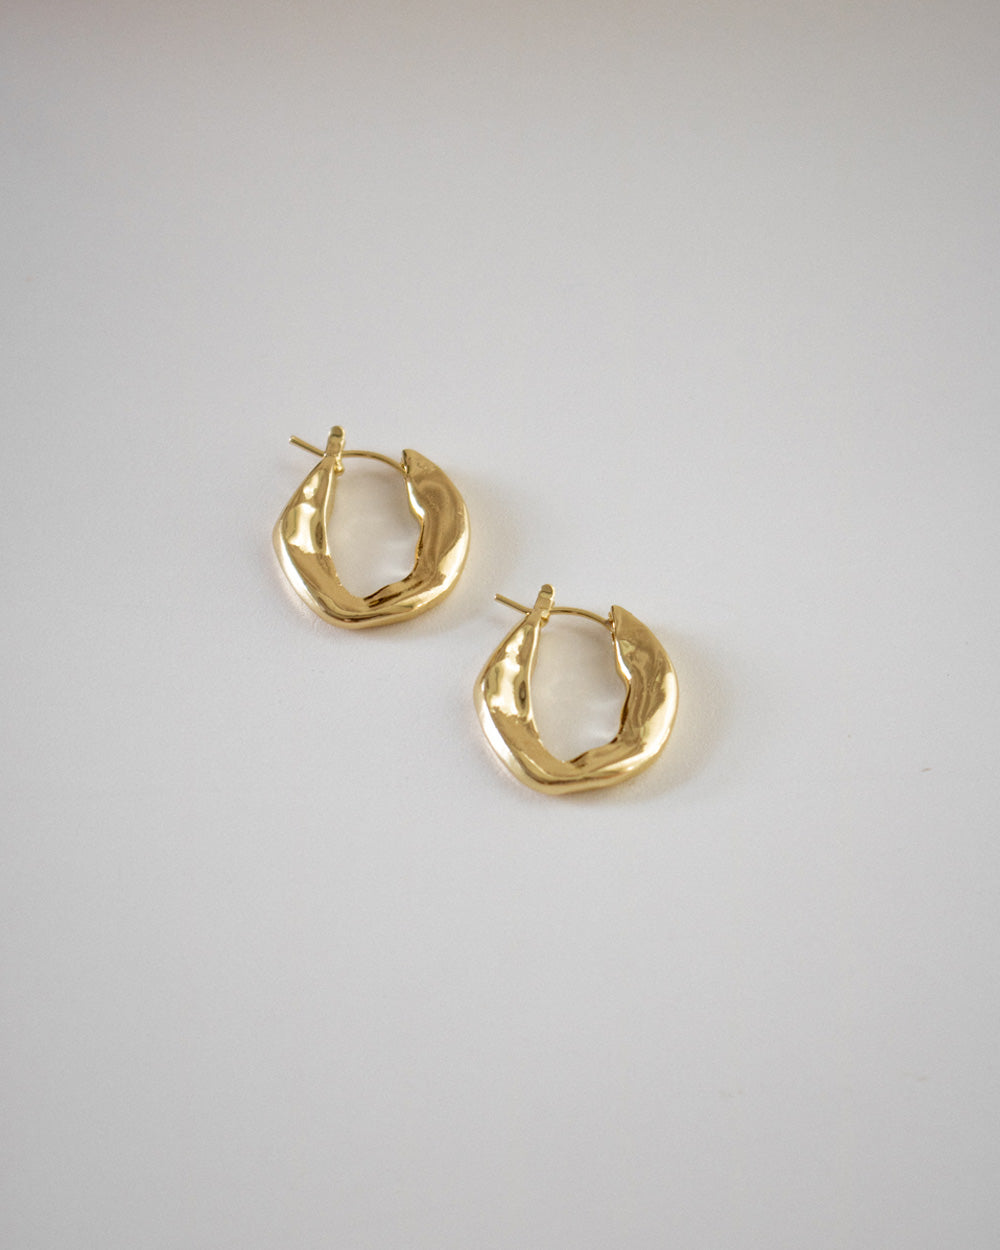 Flat golden hoops featuring a unique uneven surface @thehexad